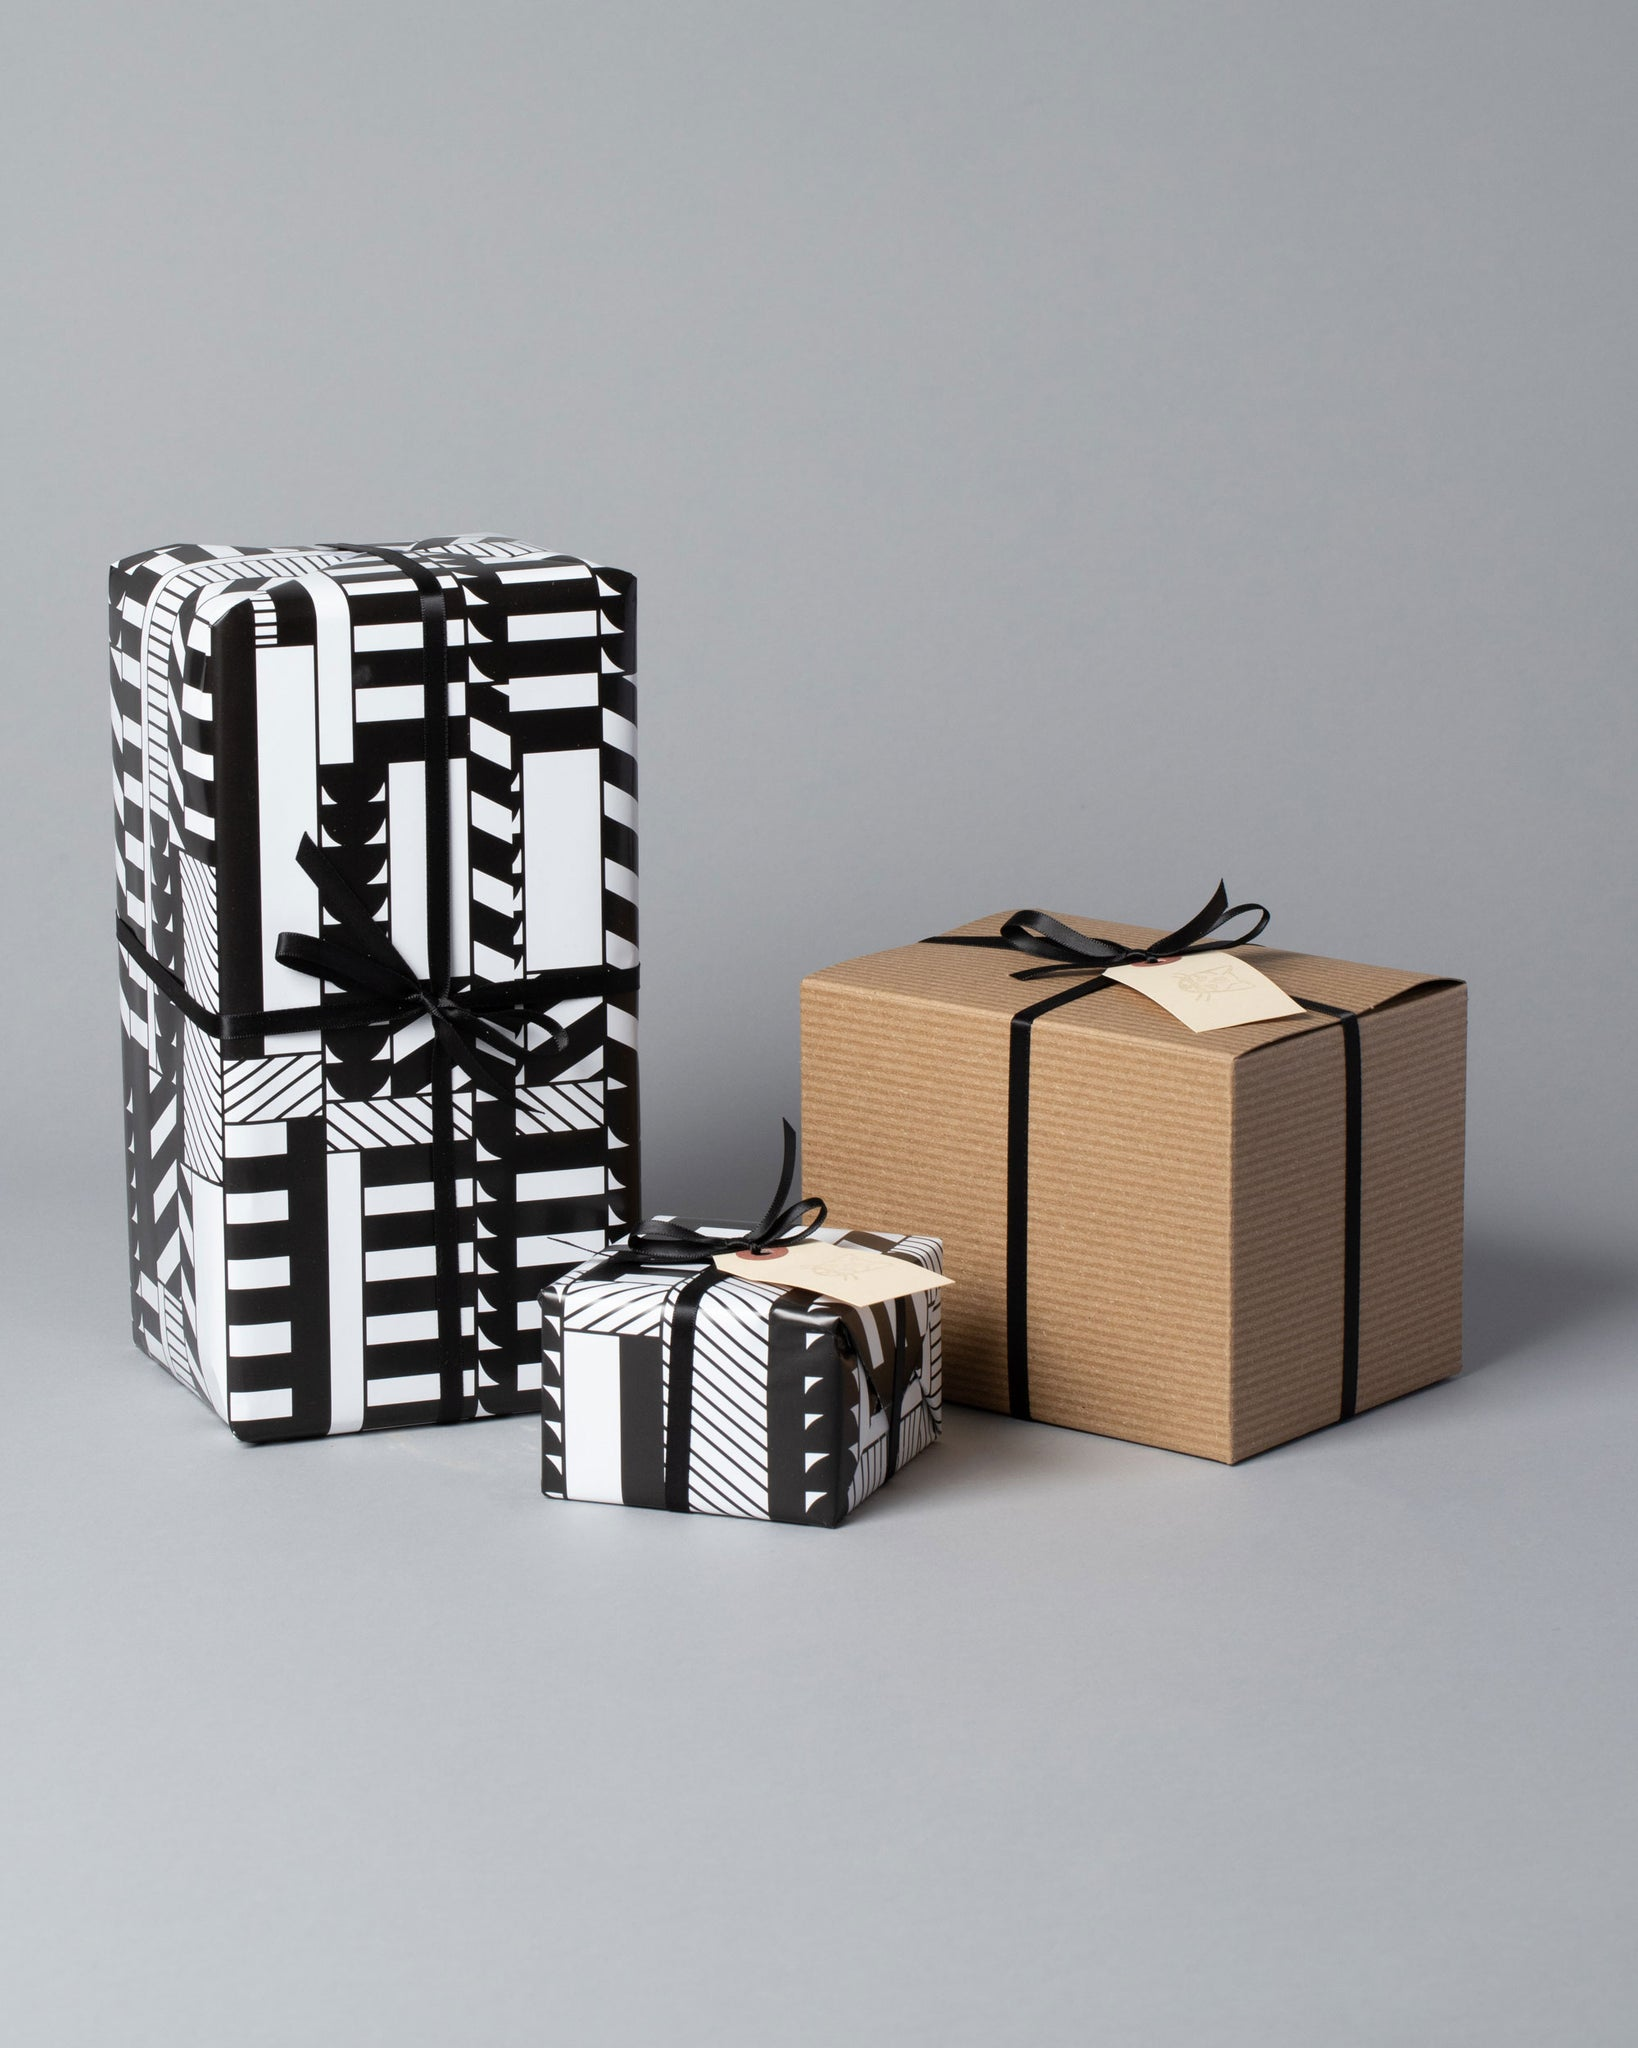 Gift Wrapping options, of black and white printed wrapping paper and cardboard boxes all wrapped with ribbon